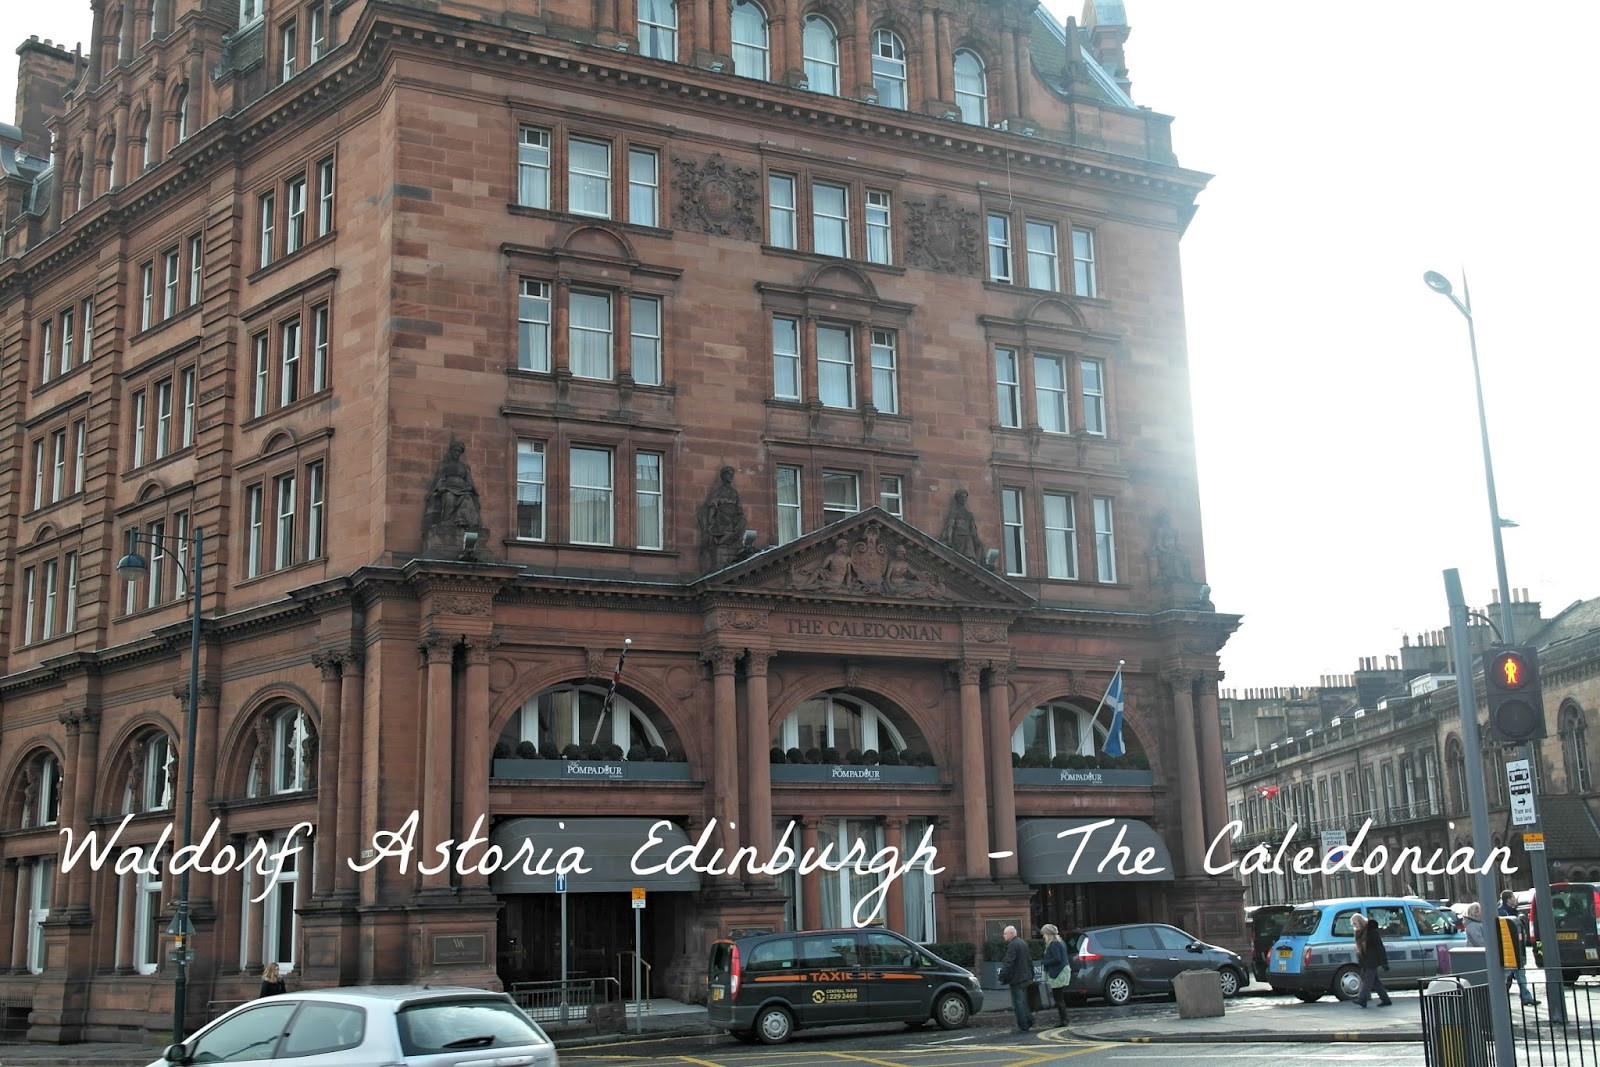 Waldorf Astoria Edinburgh - The Caledonian review